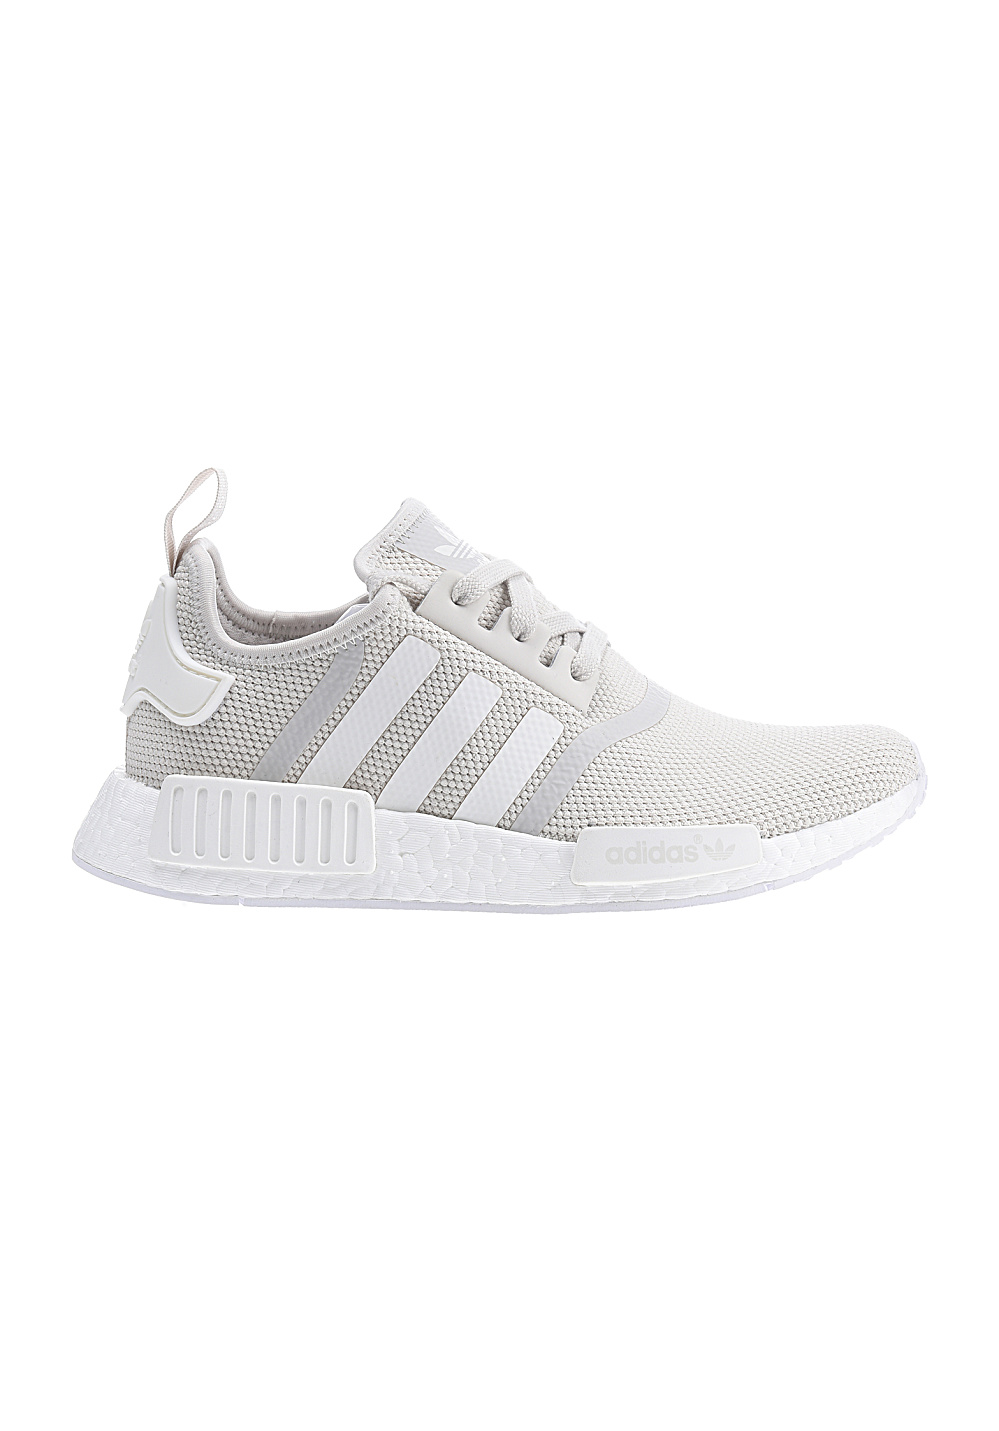 adidas nmd r1 baskets pour femme beige planet sports. Black Bedroom Furniture Sets. Home Design Ideas